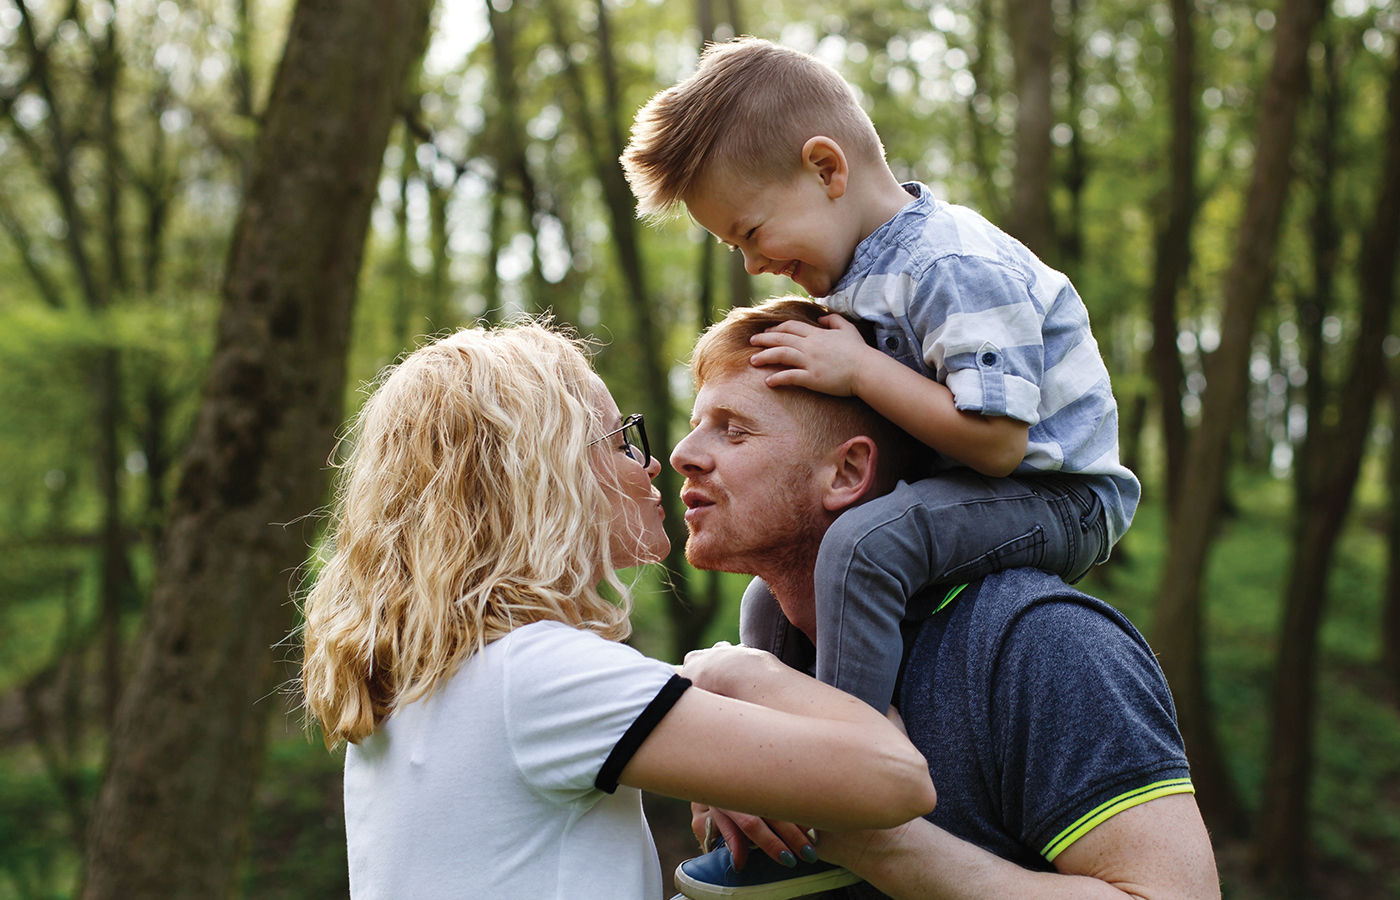 Yes, You Should Be Affectionate in Front of the Kids!